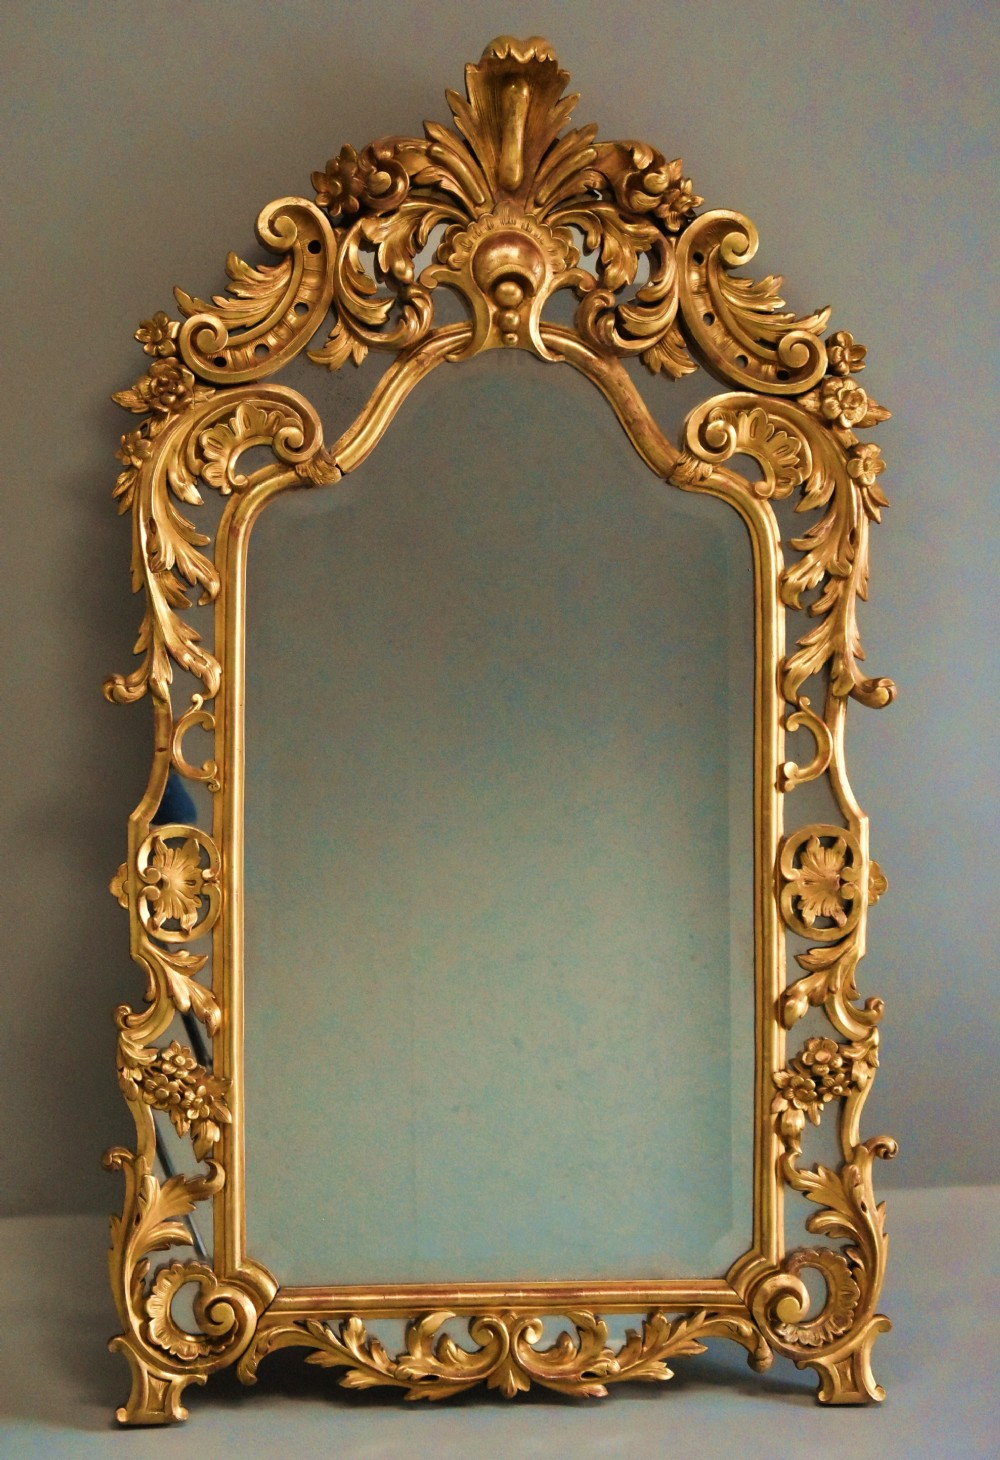 large mid 19th century italian giltwood mirror with arched top